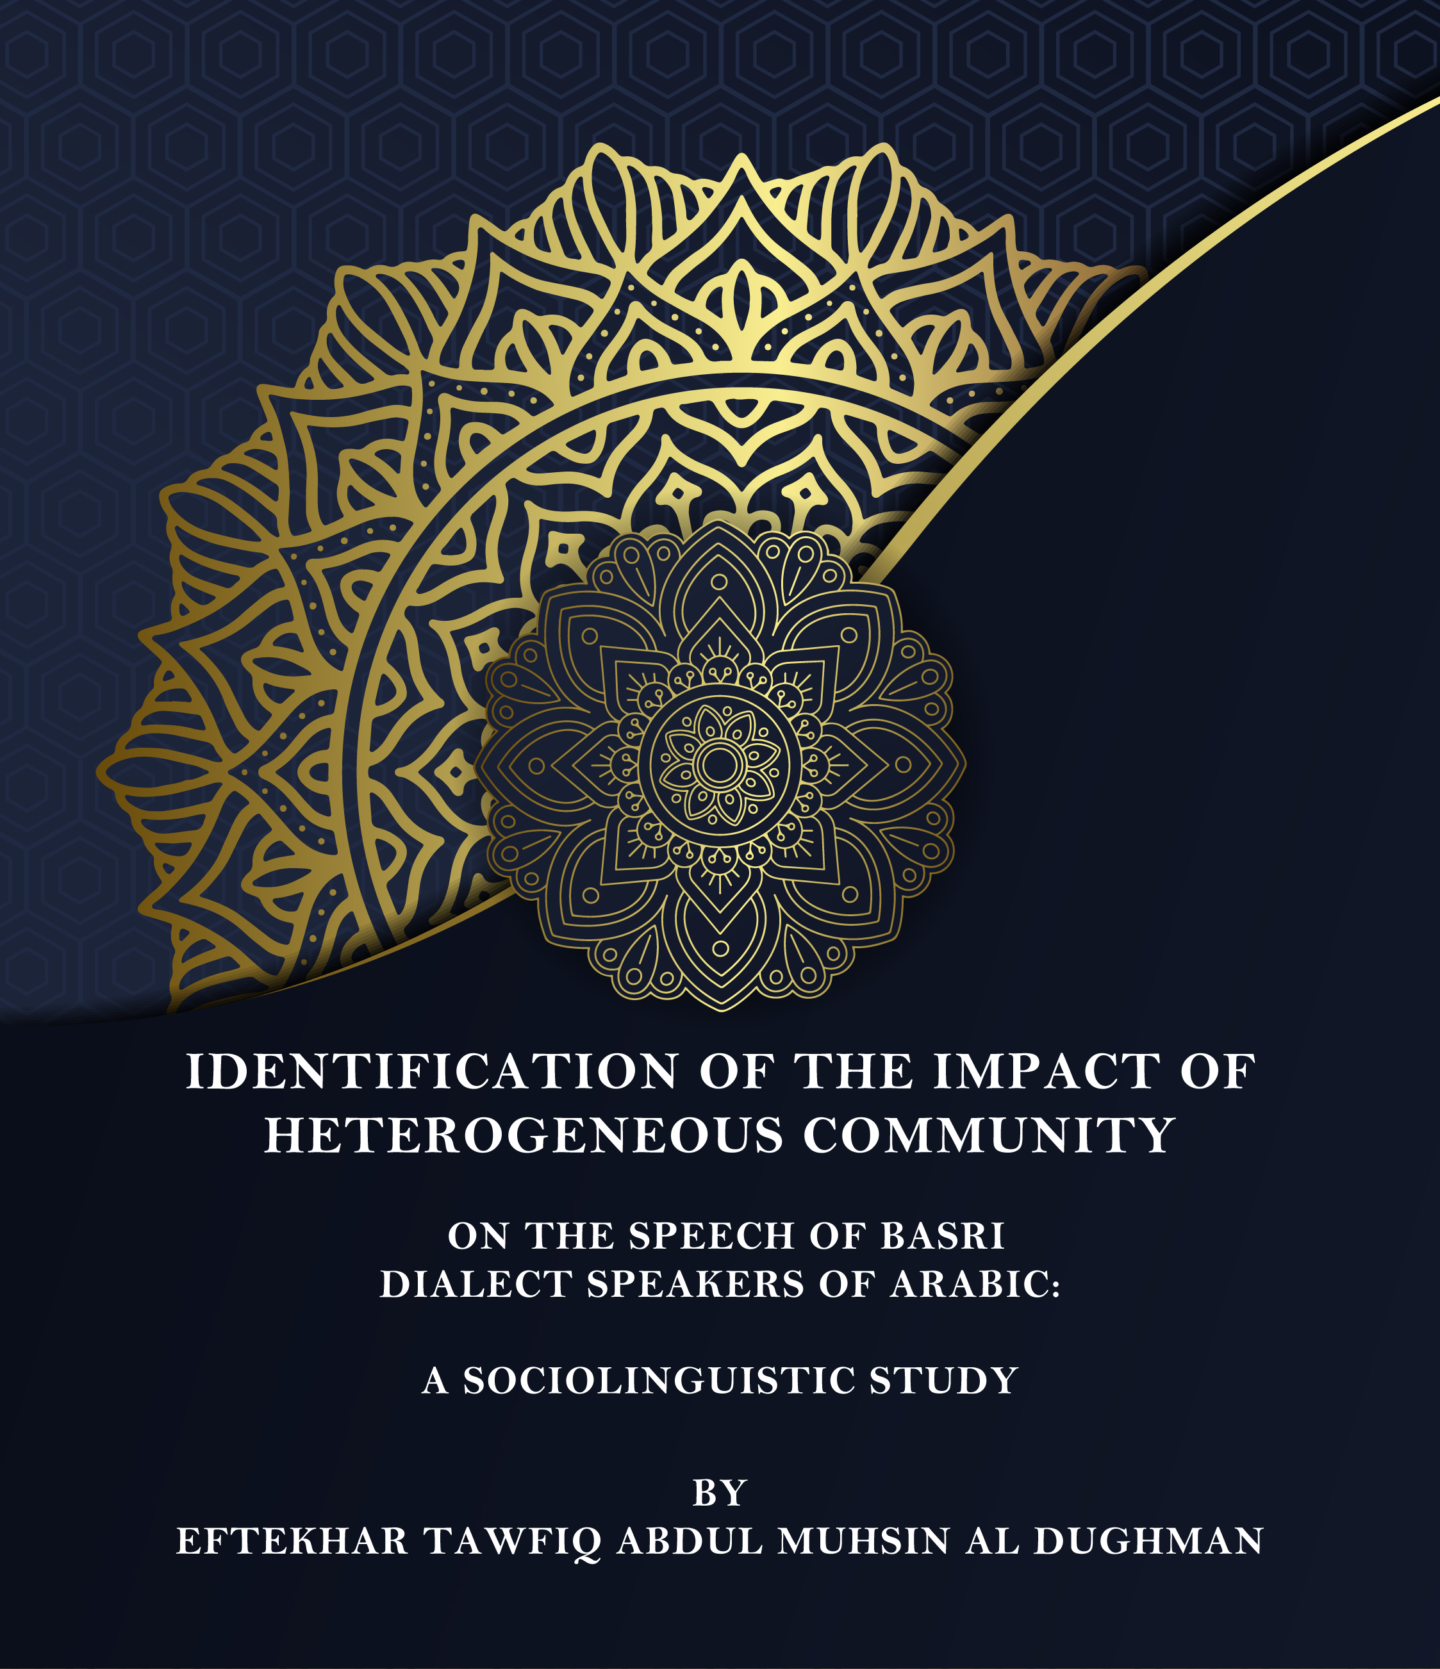 IDENTIFICATION OF THE IMPACT OF HETEROGENEOUS COMMUNITY ON THE SPEECH OF BASRI DIALECT SPEAKERS OF ARABIC